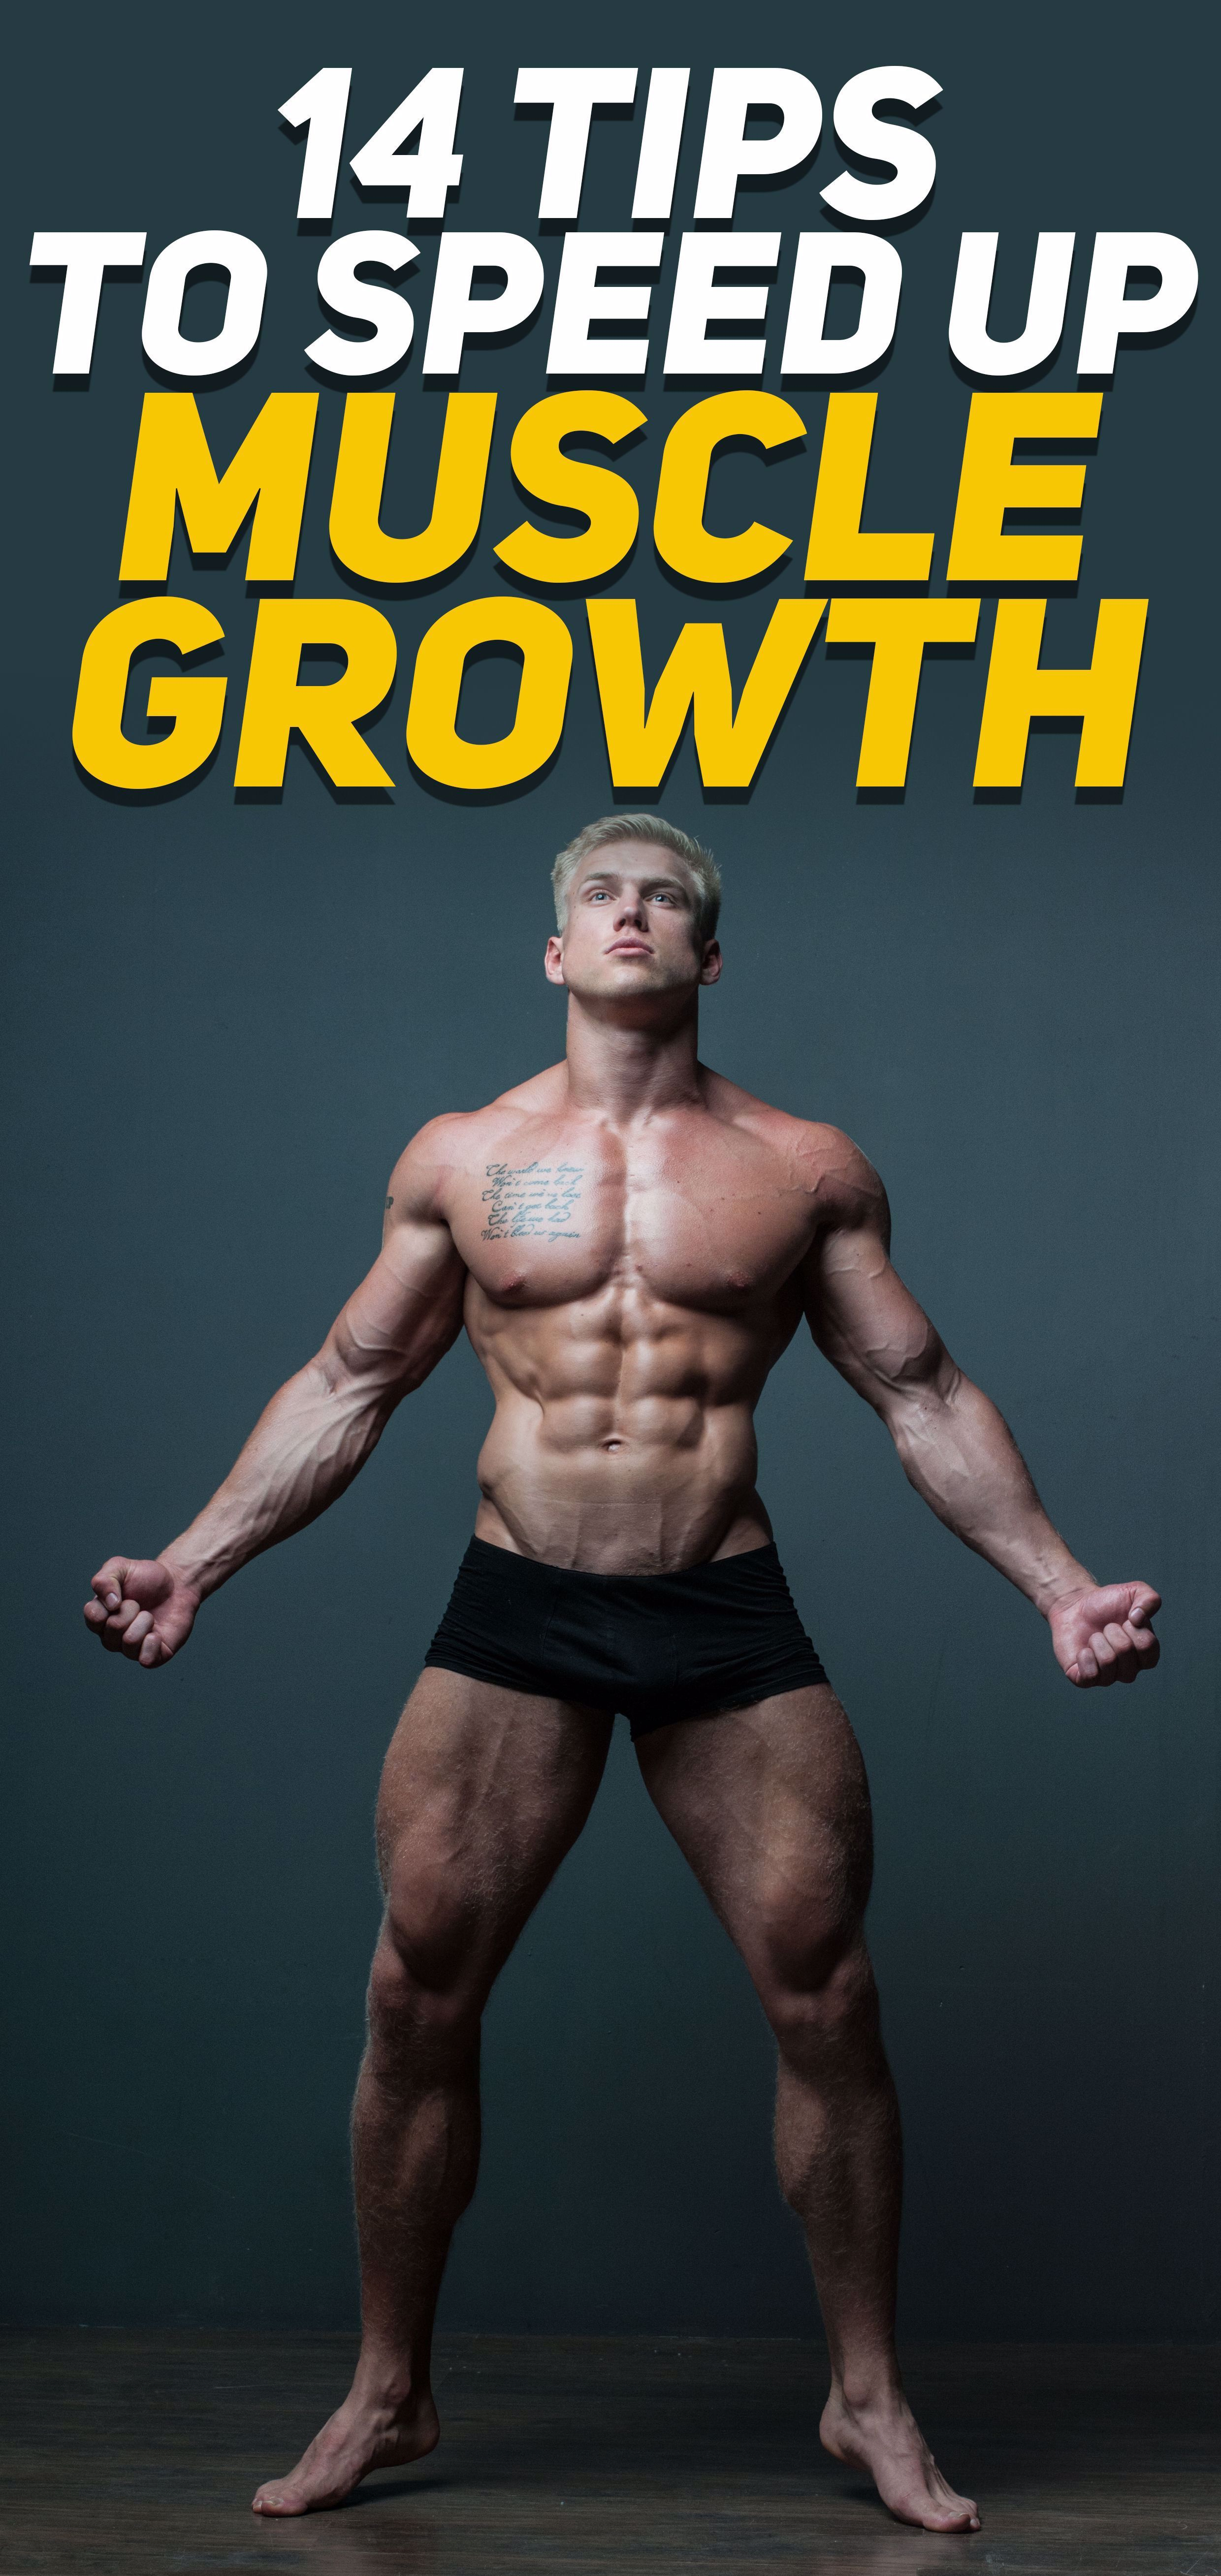 Build muscle faster with these 14 tips that will help you speed up muscle growth drastically! The go...